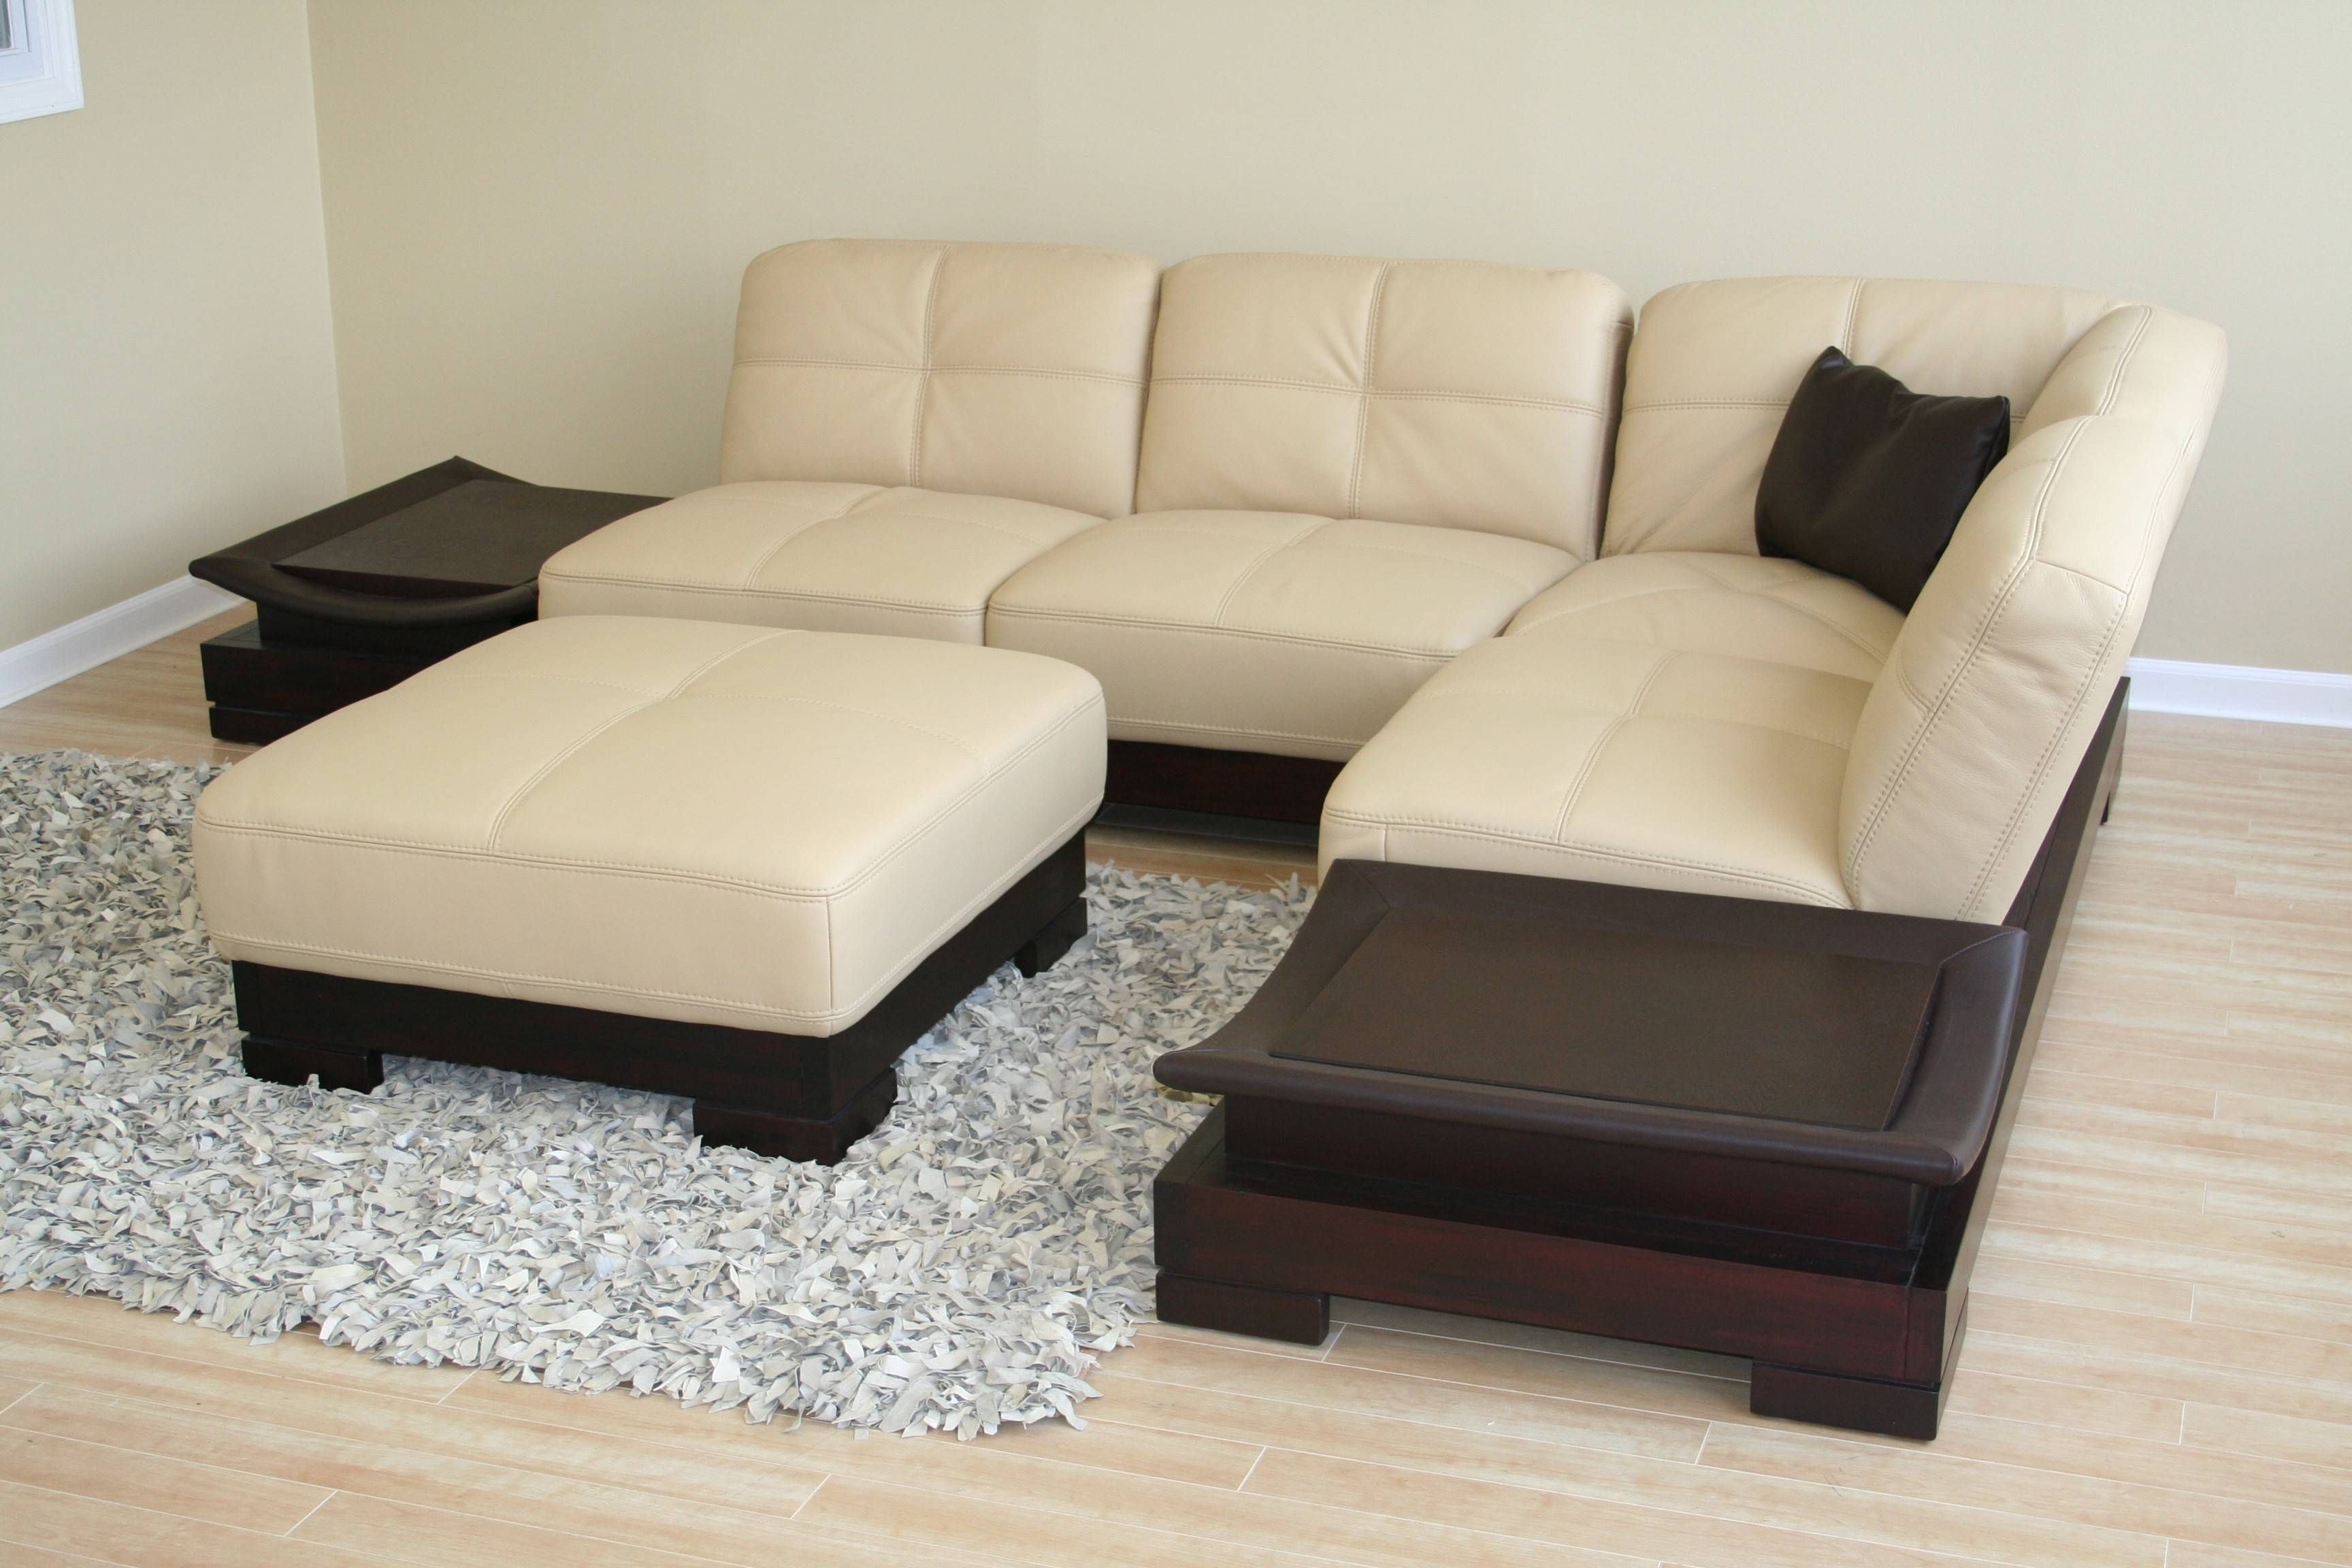 Small Scale Sectional Sofa - Cleanupflorida intended for Small Scale Leather Sectional Sofas (Image 11 of 15)